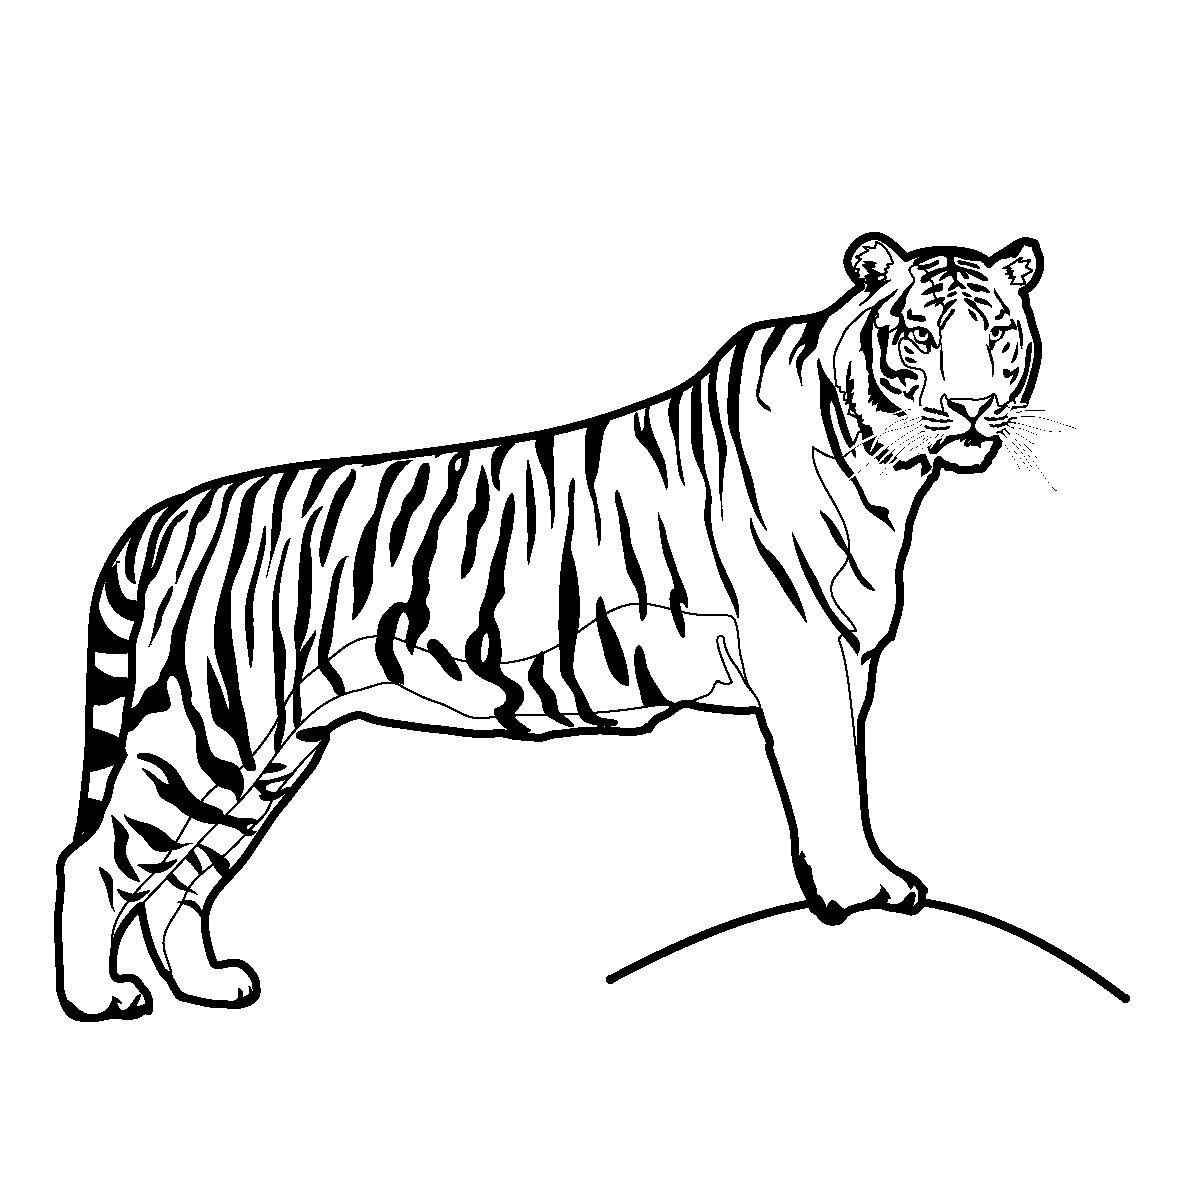 Free Printable Tiger Coloring Pages For Kids Tiger Illustration Big Cats Drawing Cat Coloring Page